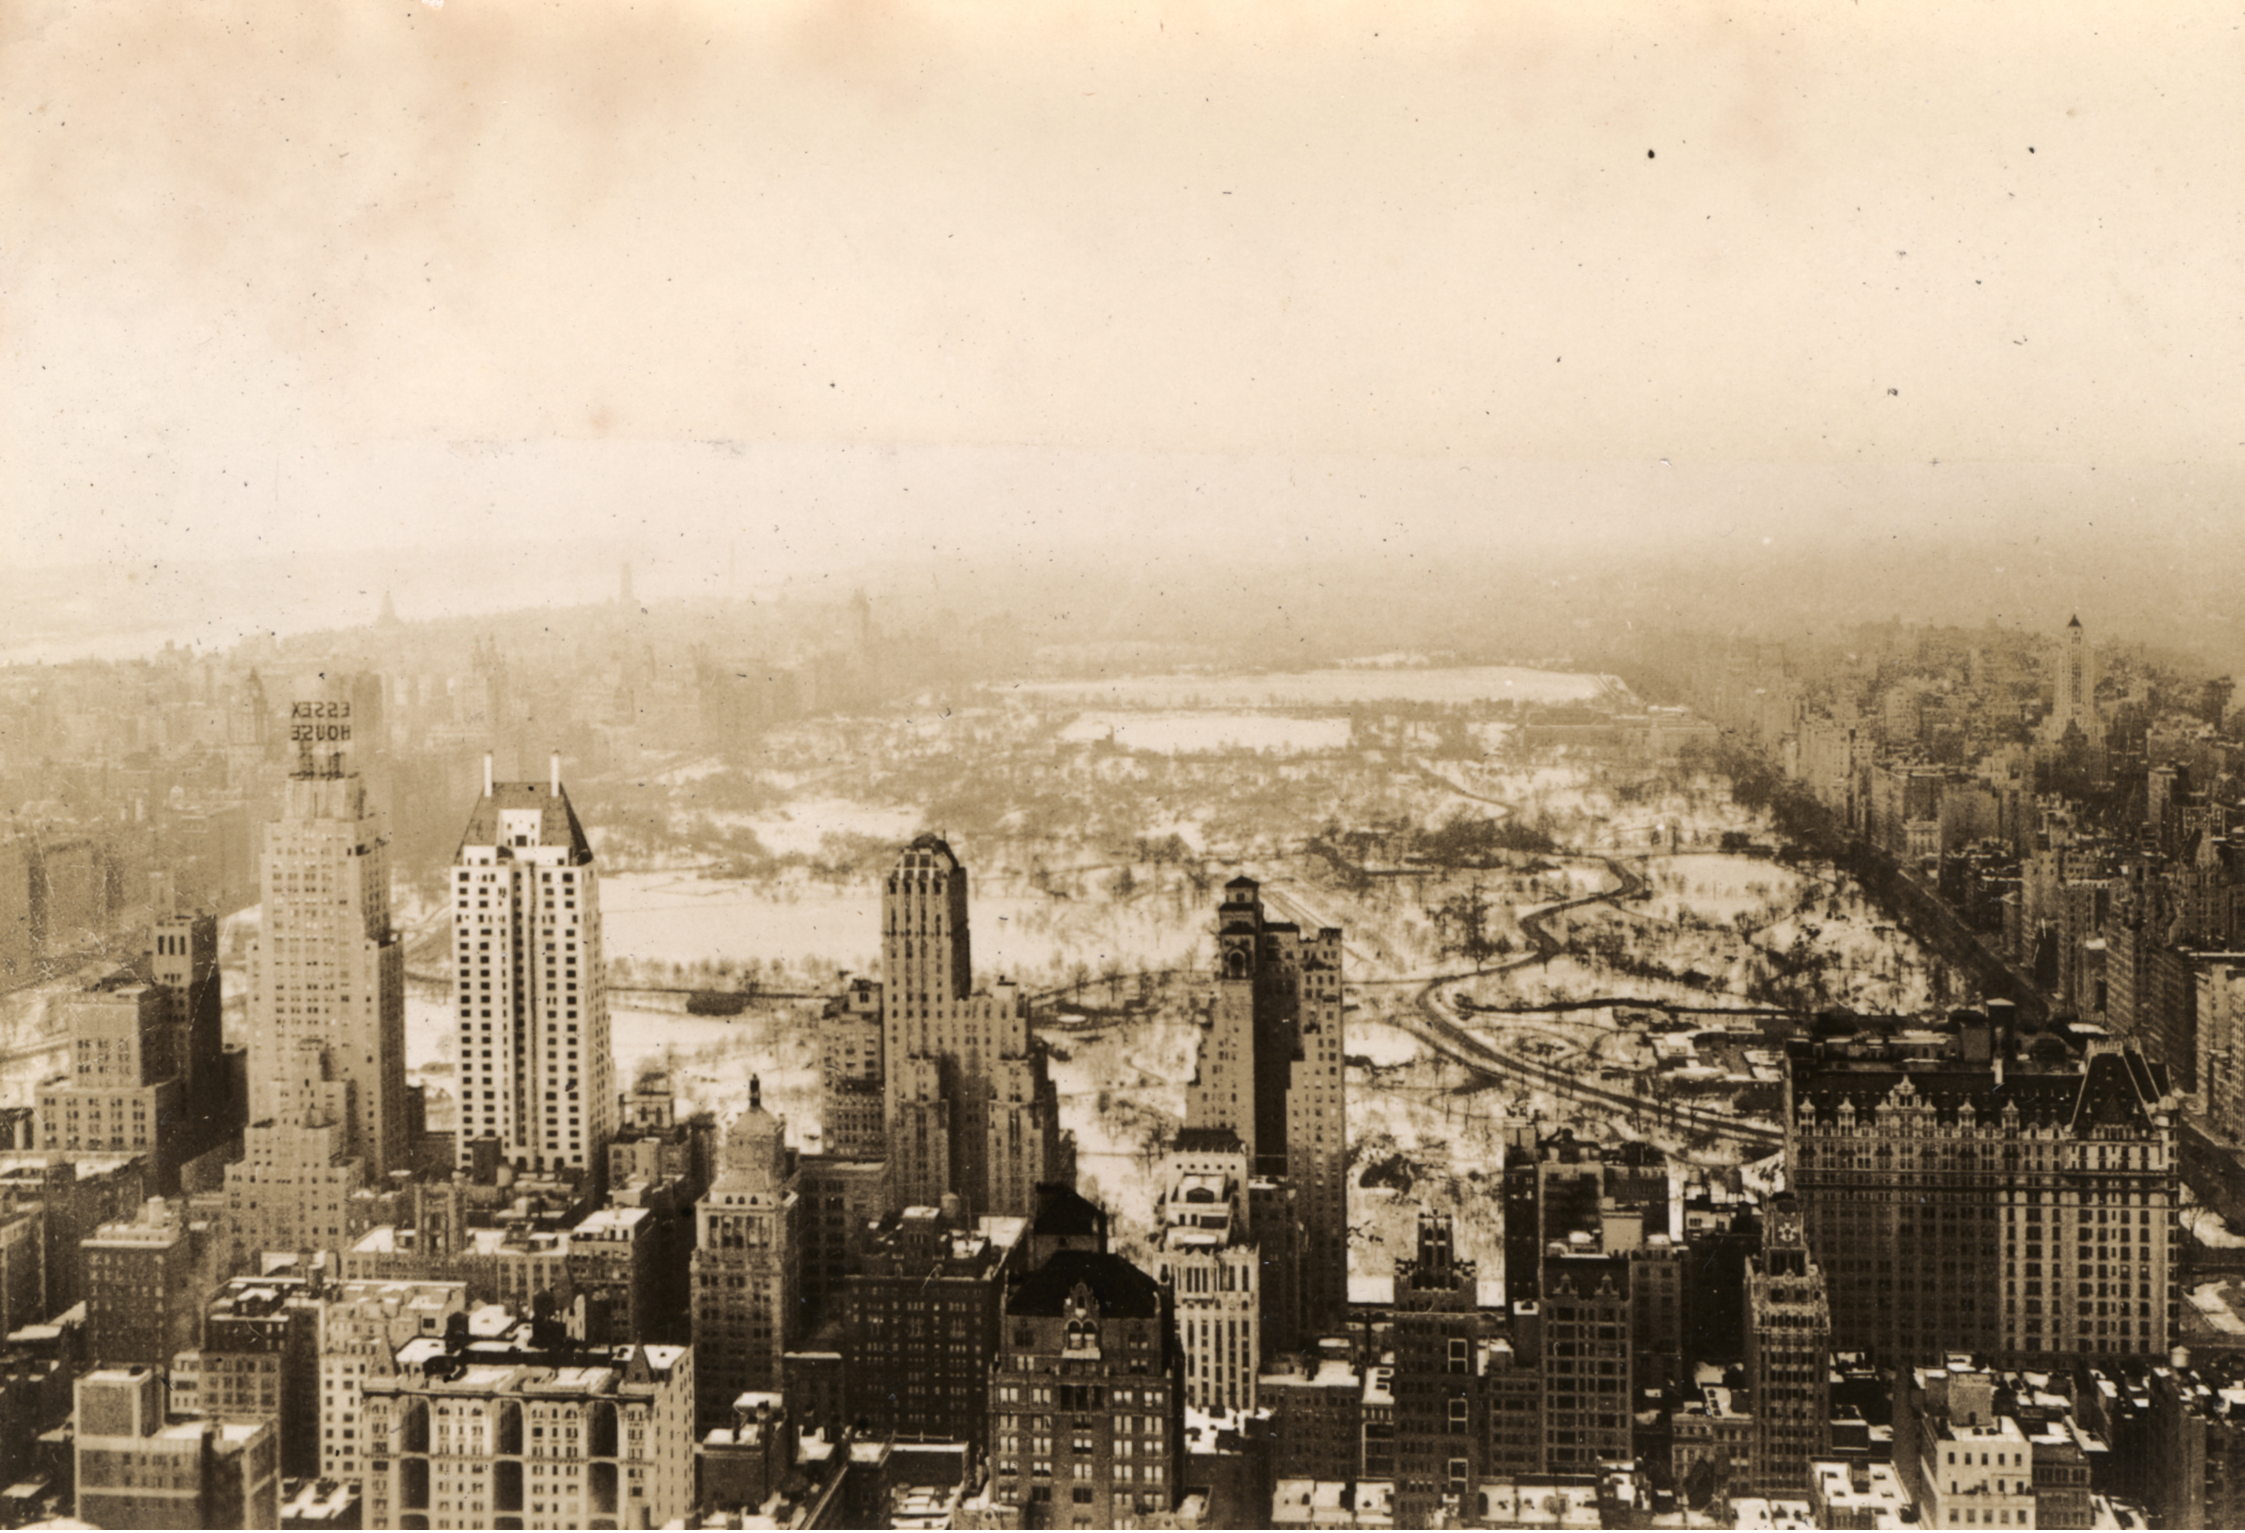 New_York_City_Central_Park_from_Rockefeller_Center_NIH